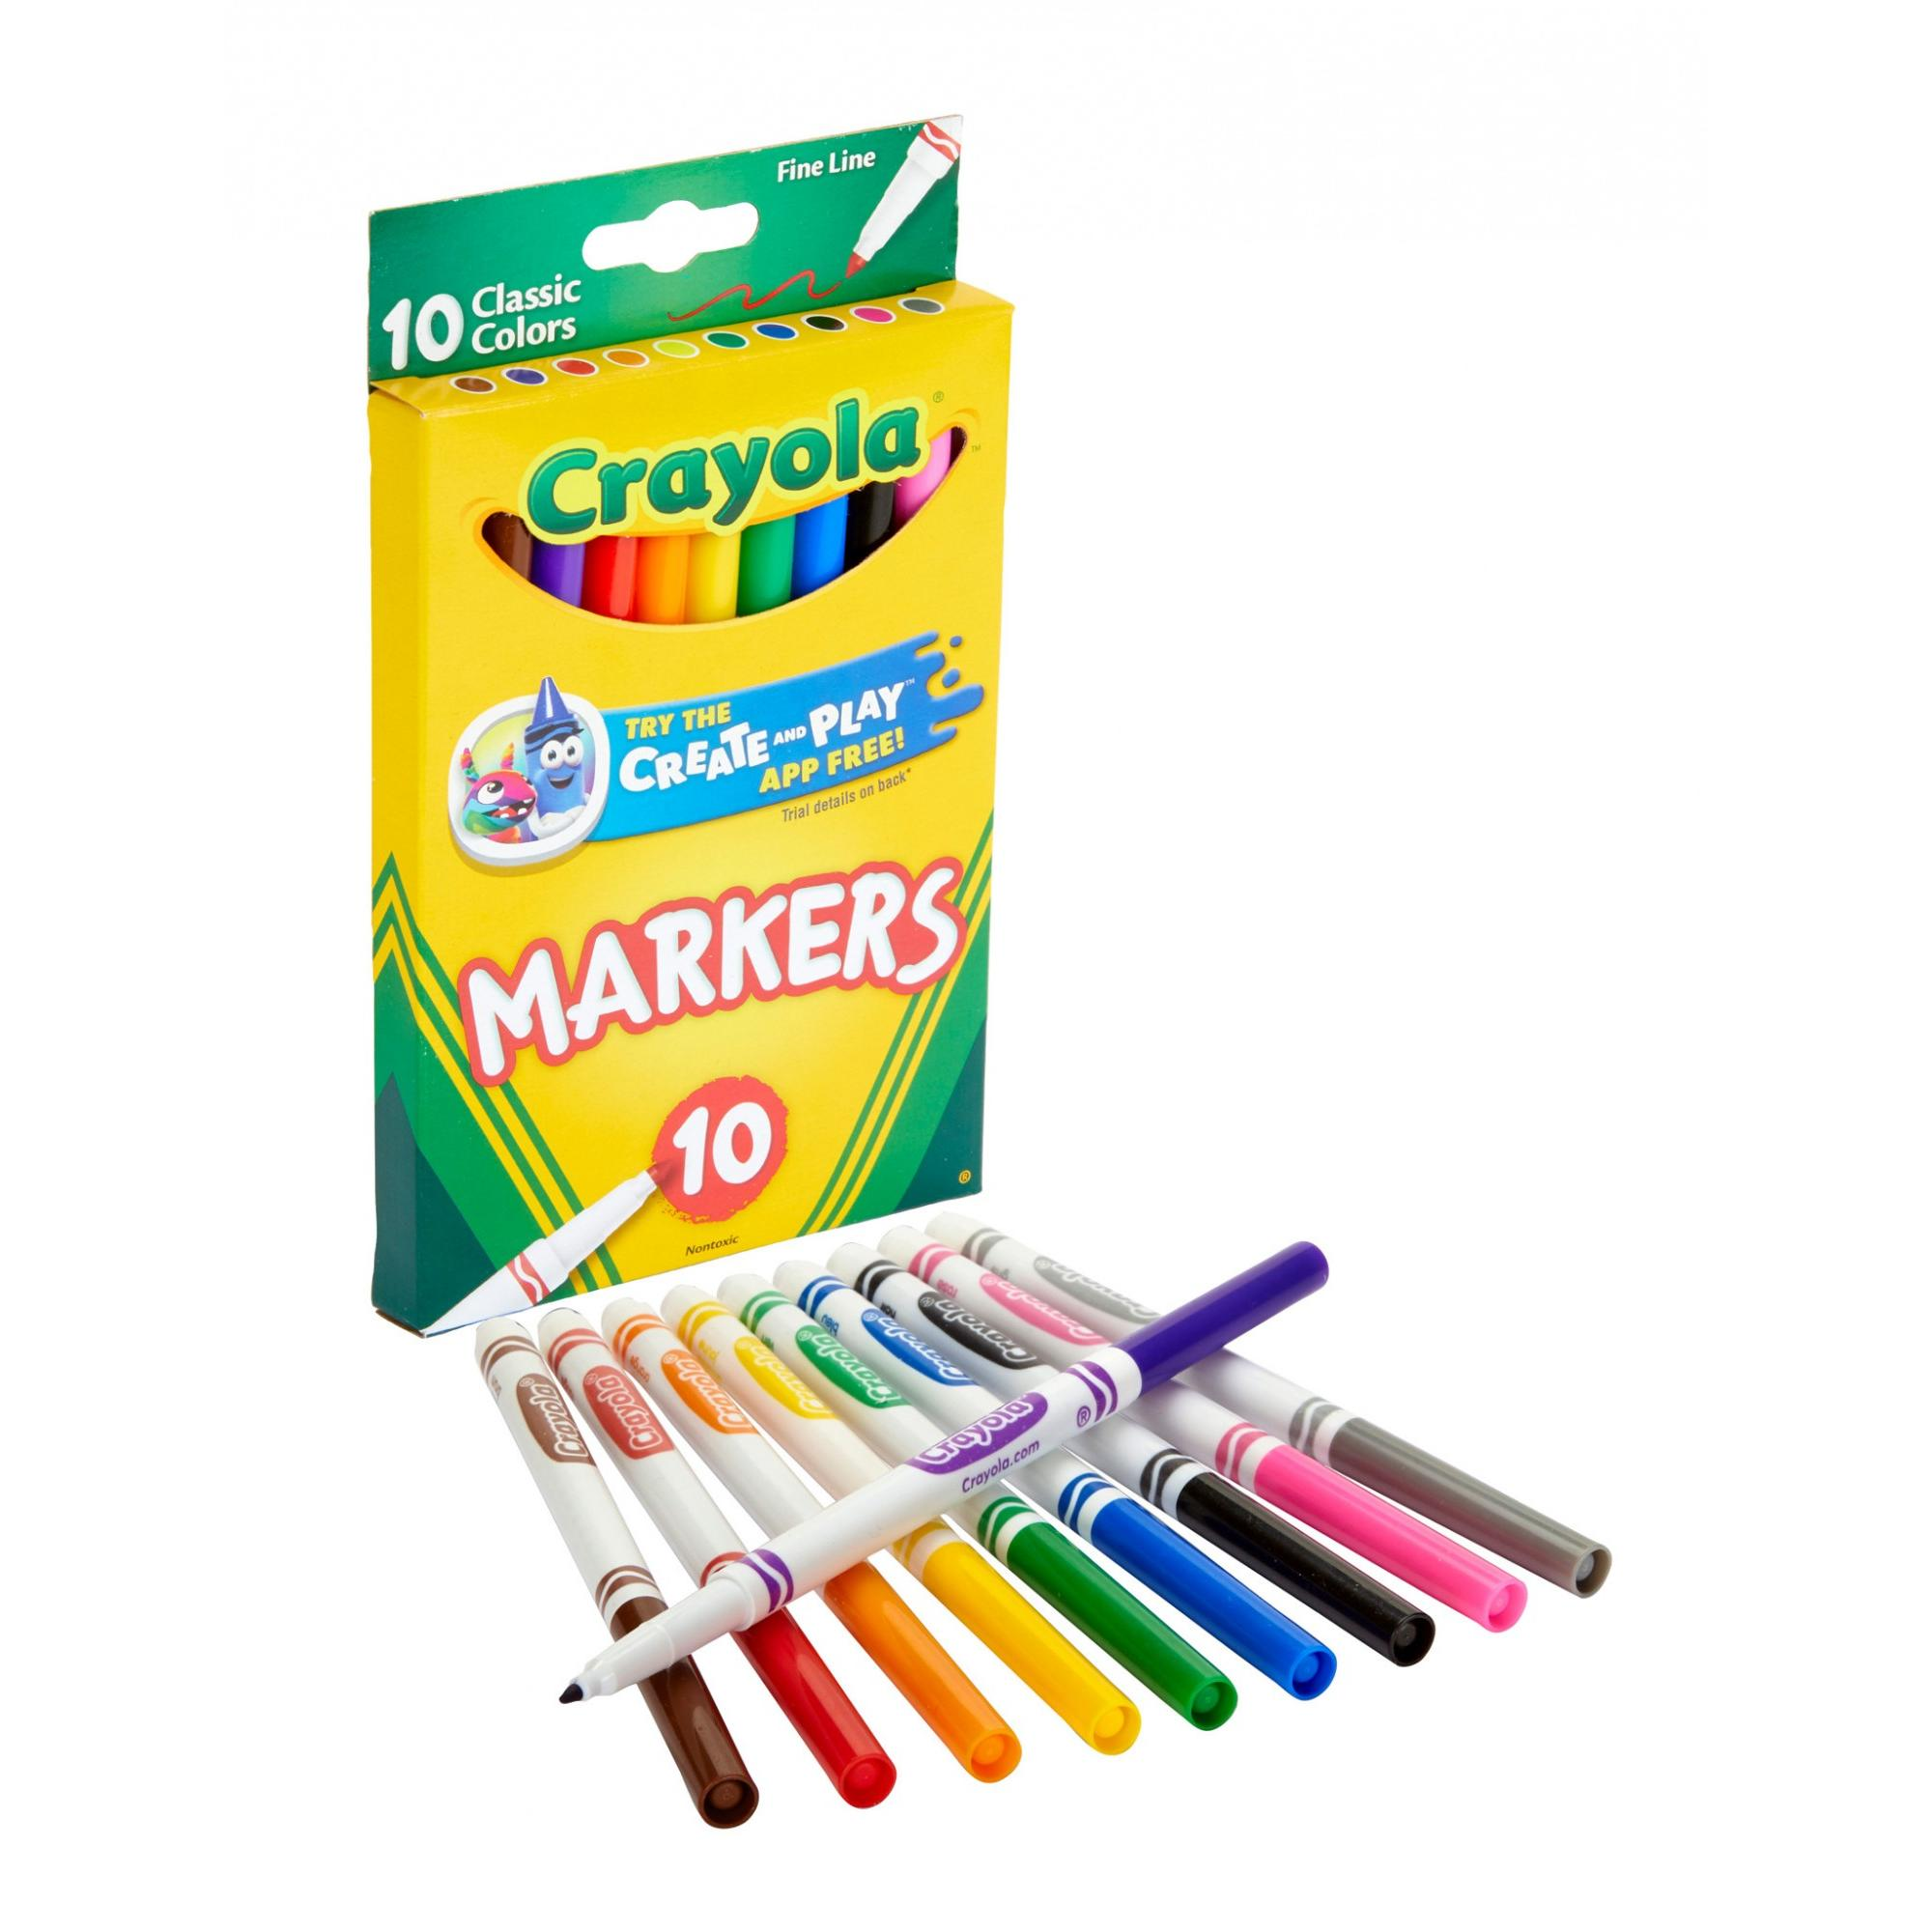 Classic Colors Crayola Fine Line Markers 10 Ct Pack of 24